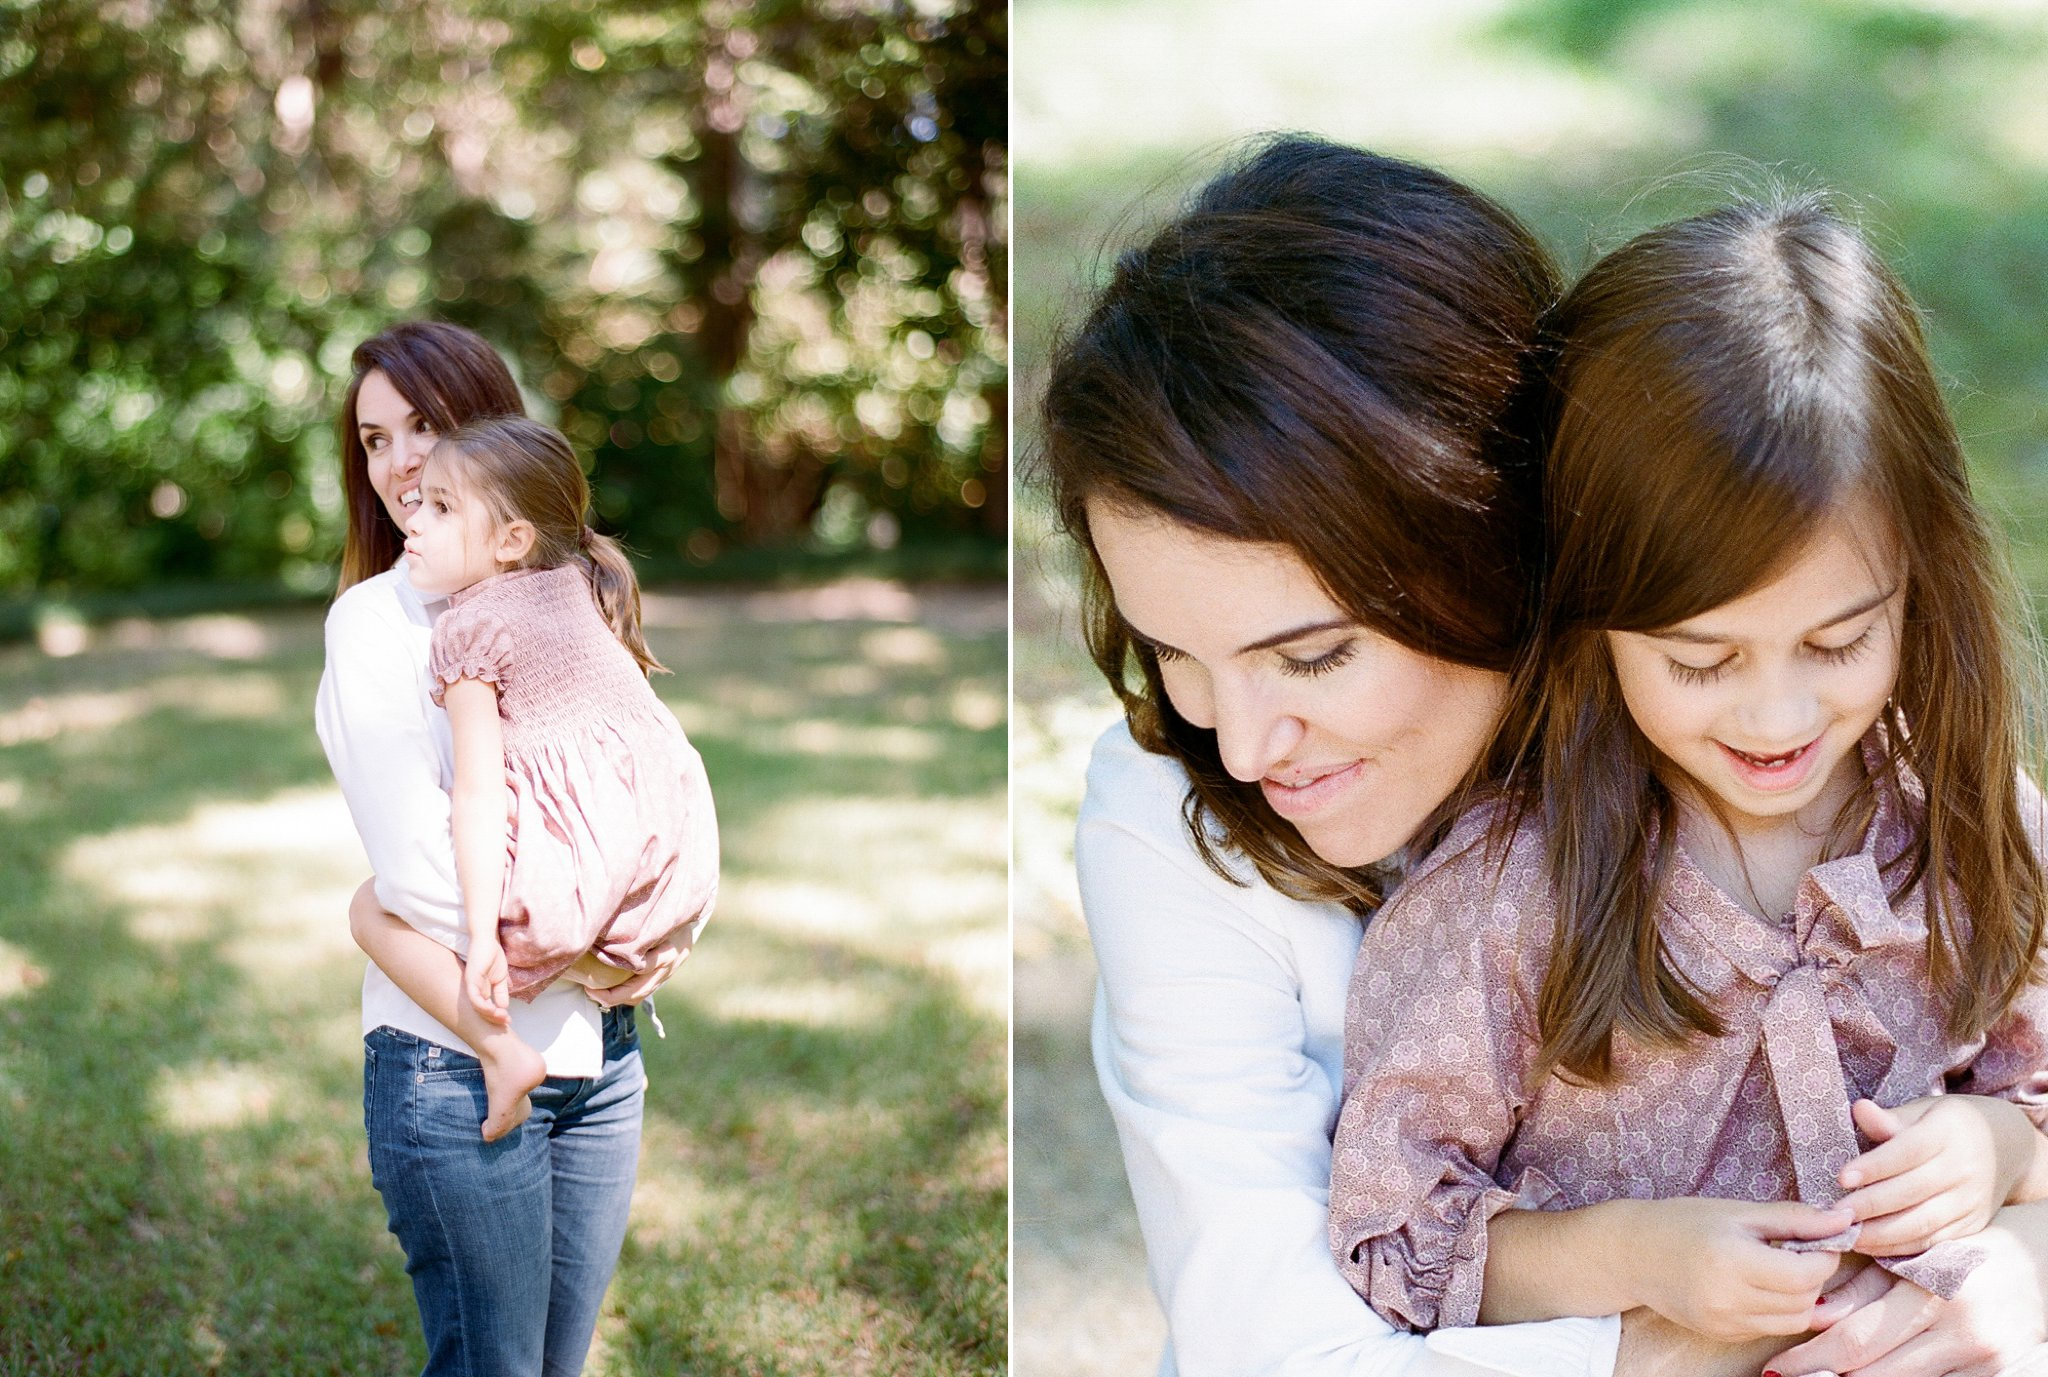 tallahassee family photographer shannon griffin photography_0033.jpg